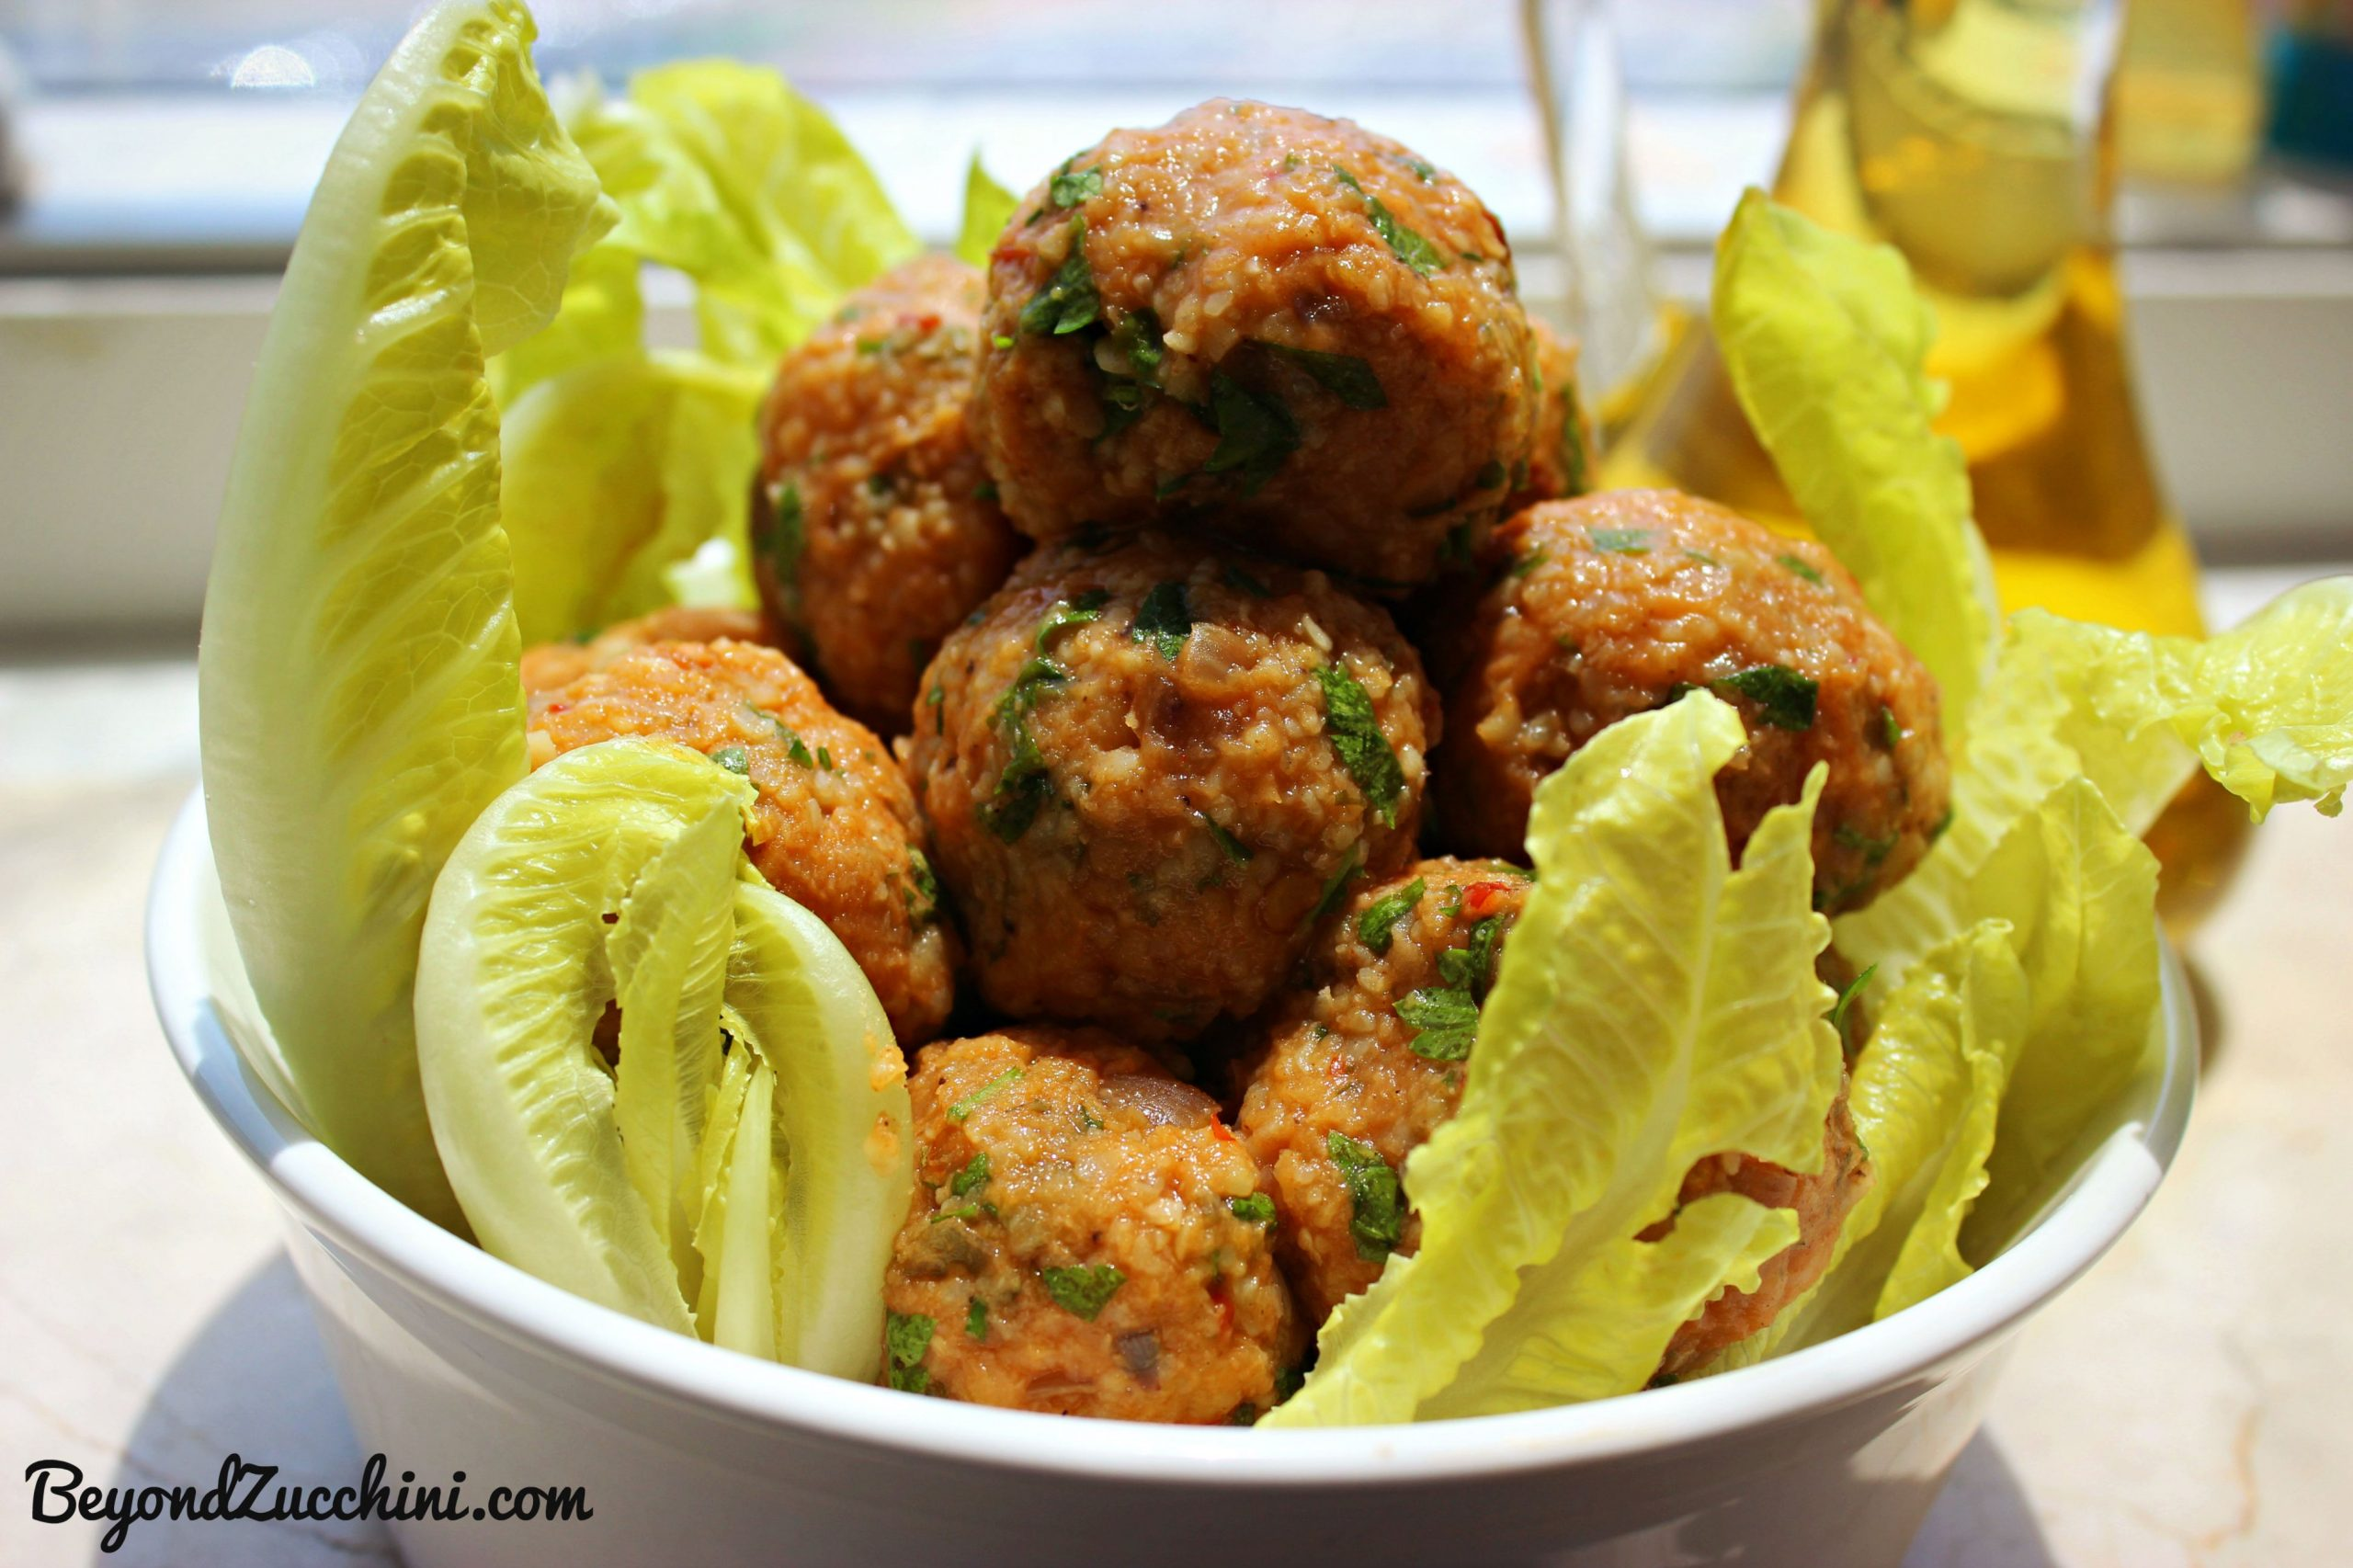 Turkish Lentil Kofta Balls (Vegan) | Beyond Zucchini